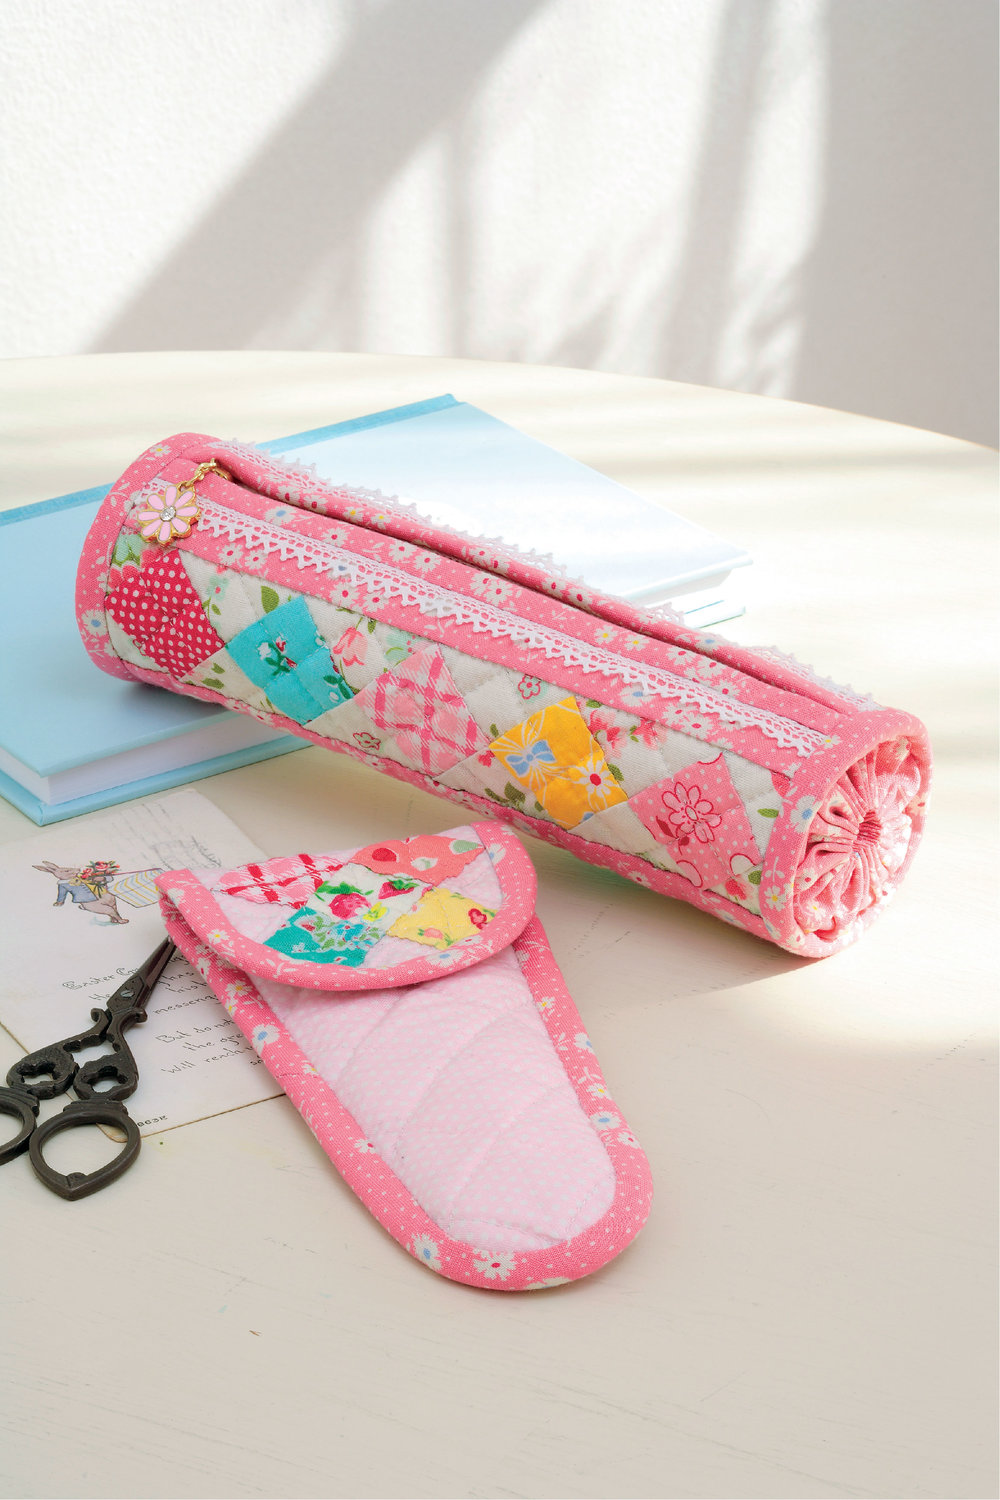 Patchwork Pencil Case on page 42